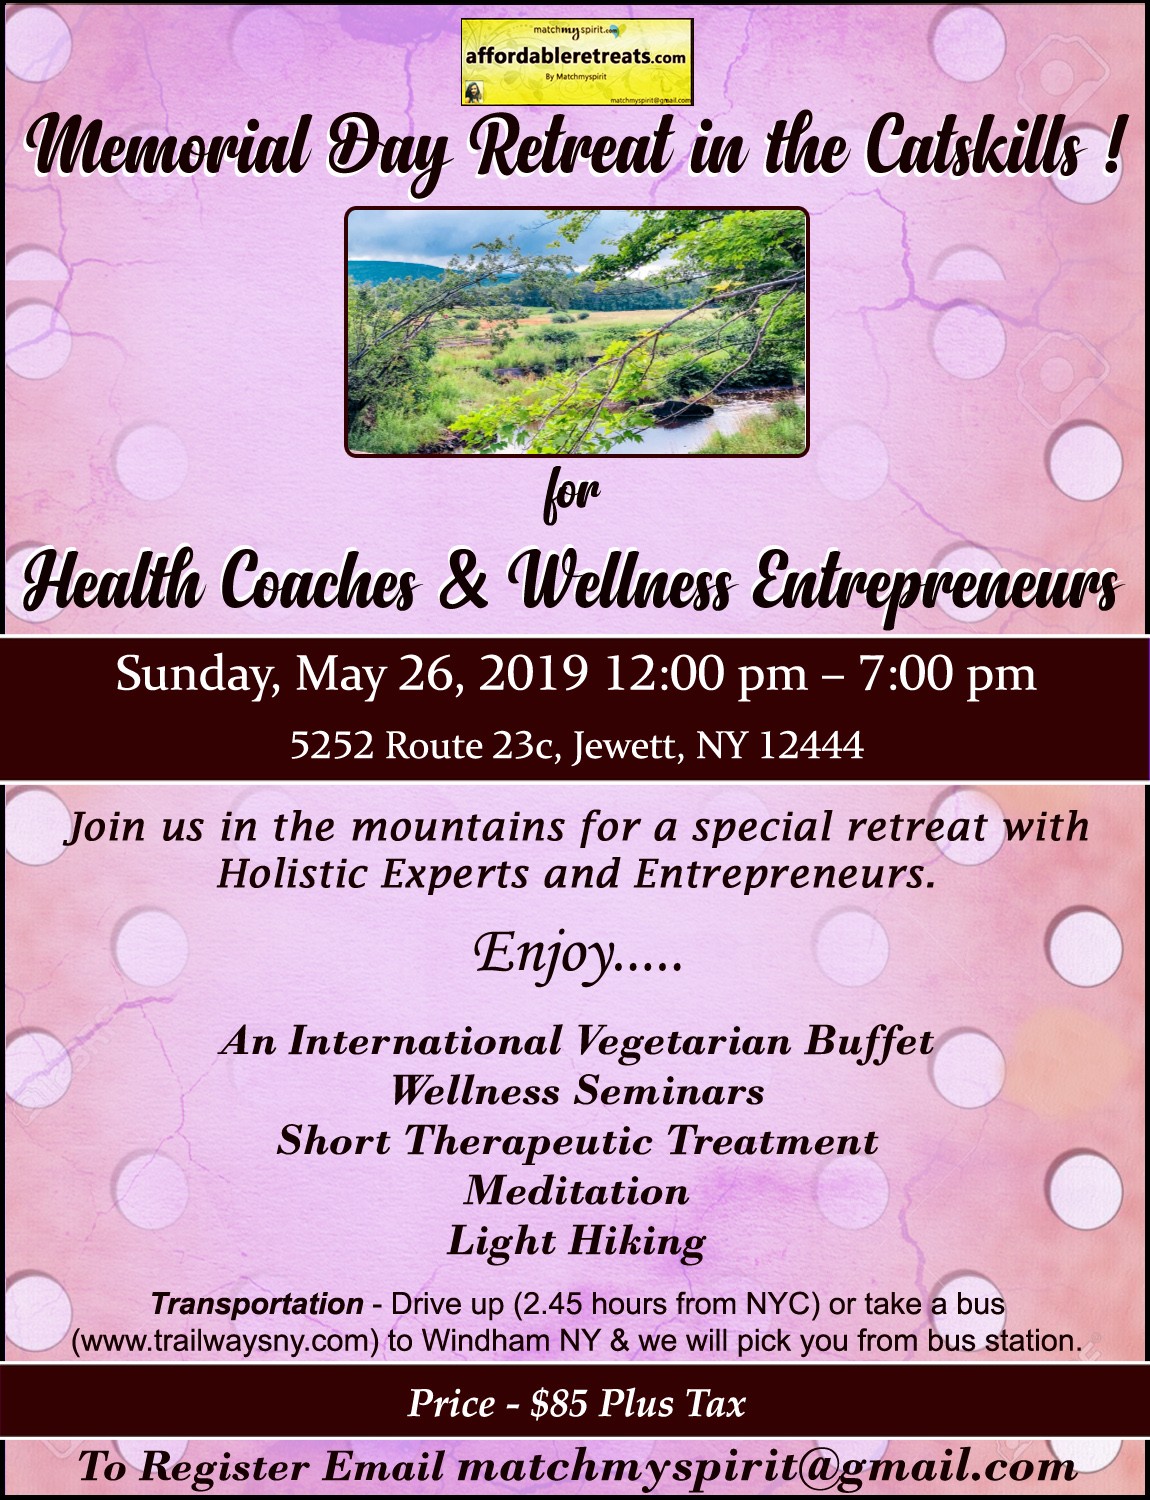 Memorial Day Retreat in the Catskills ! for Health Coaches & Wellness Entrepreneurs